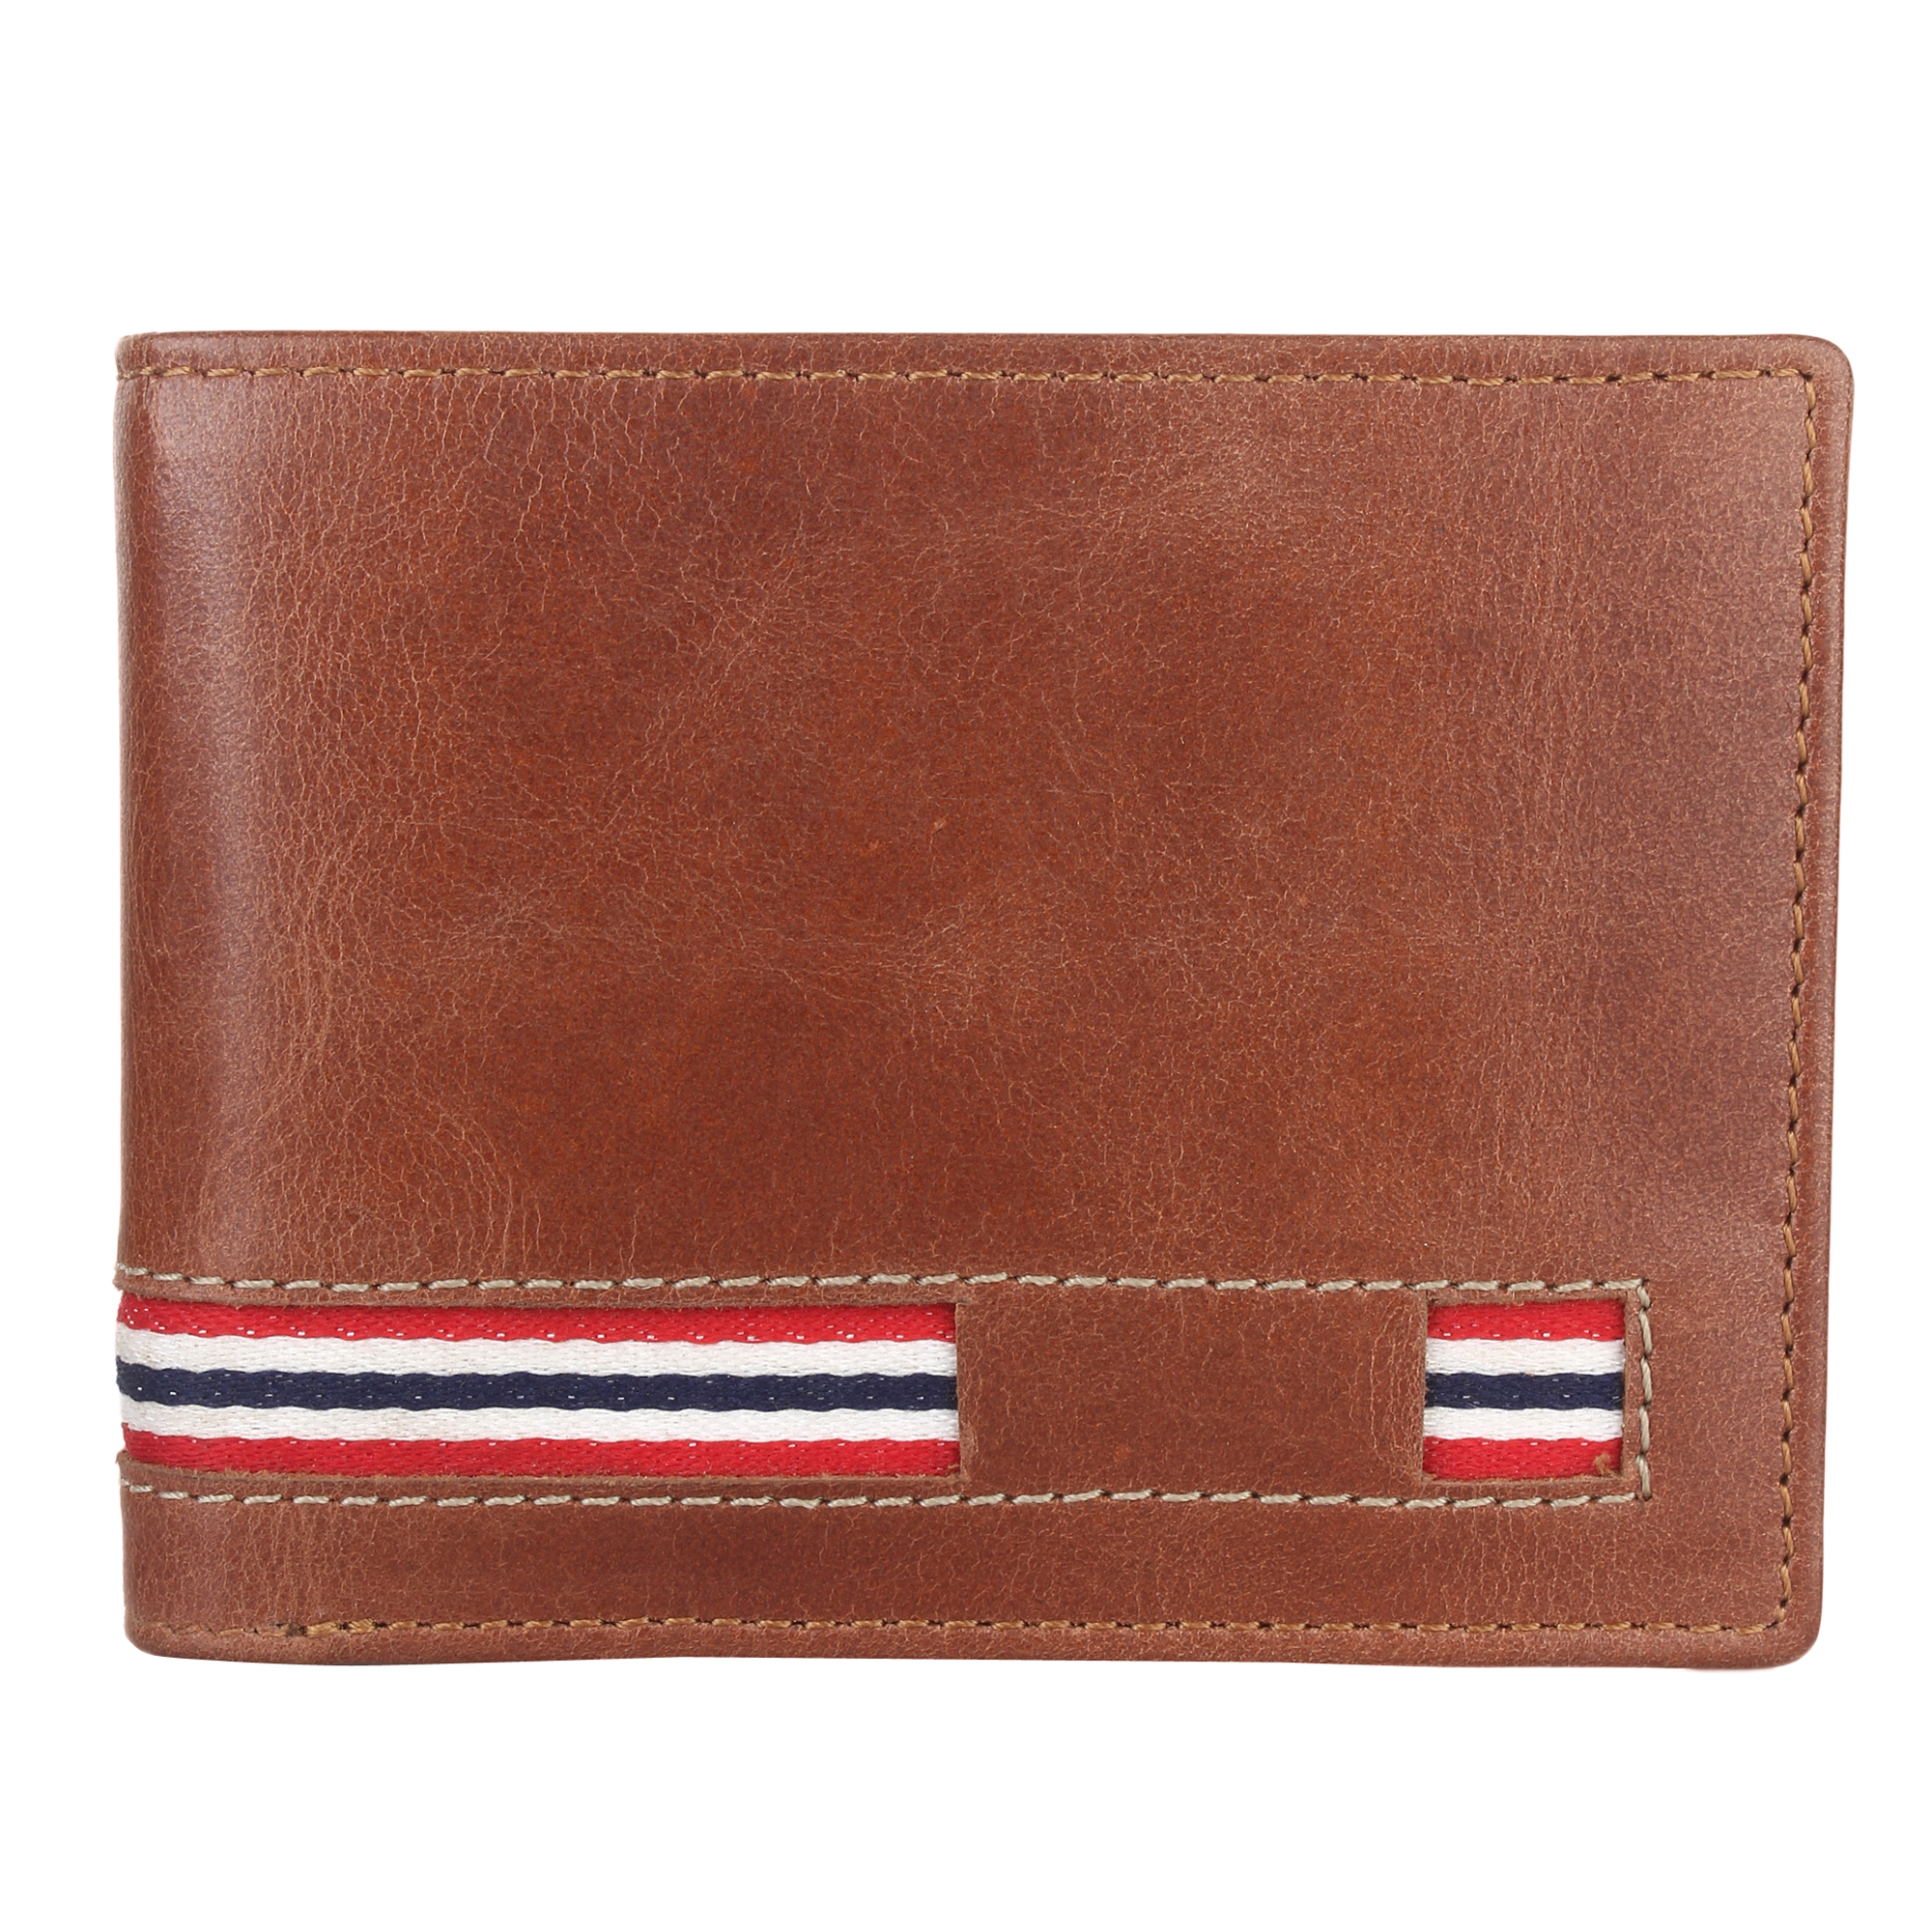 Leather Wallets Manufacturers in Germany, Leather Wallets Suppliers in Germany, Leather Wallets Wholesalers in Germany, Leather Wallets Traders in Germany, custom leather wallet manufacturers in Germany, Leathe